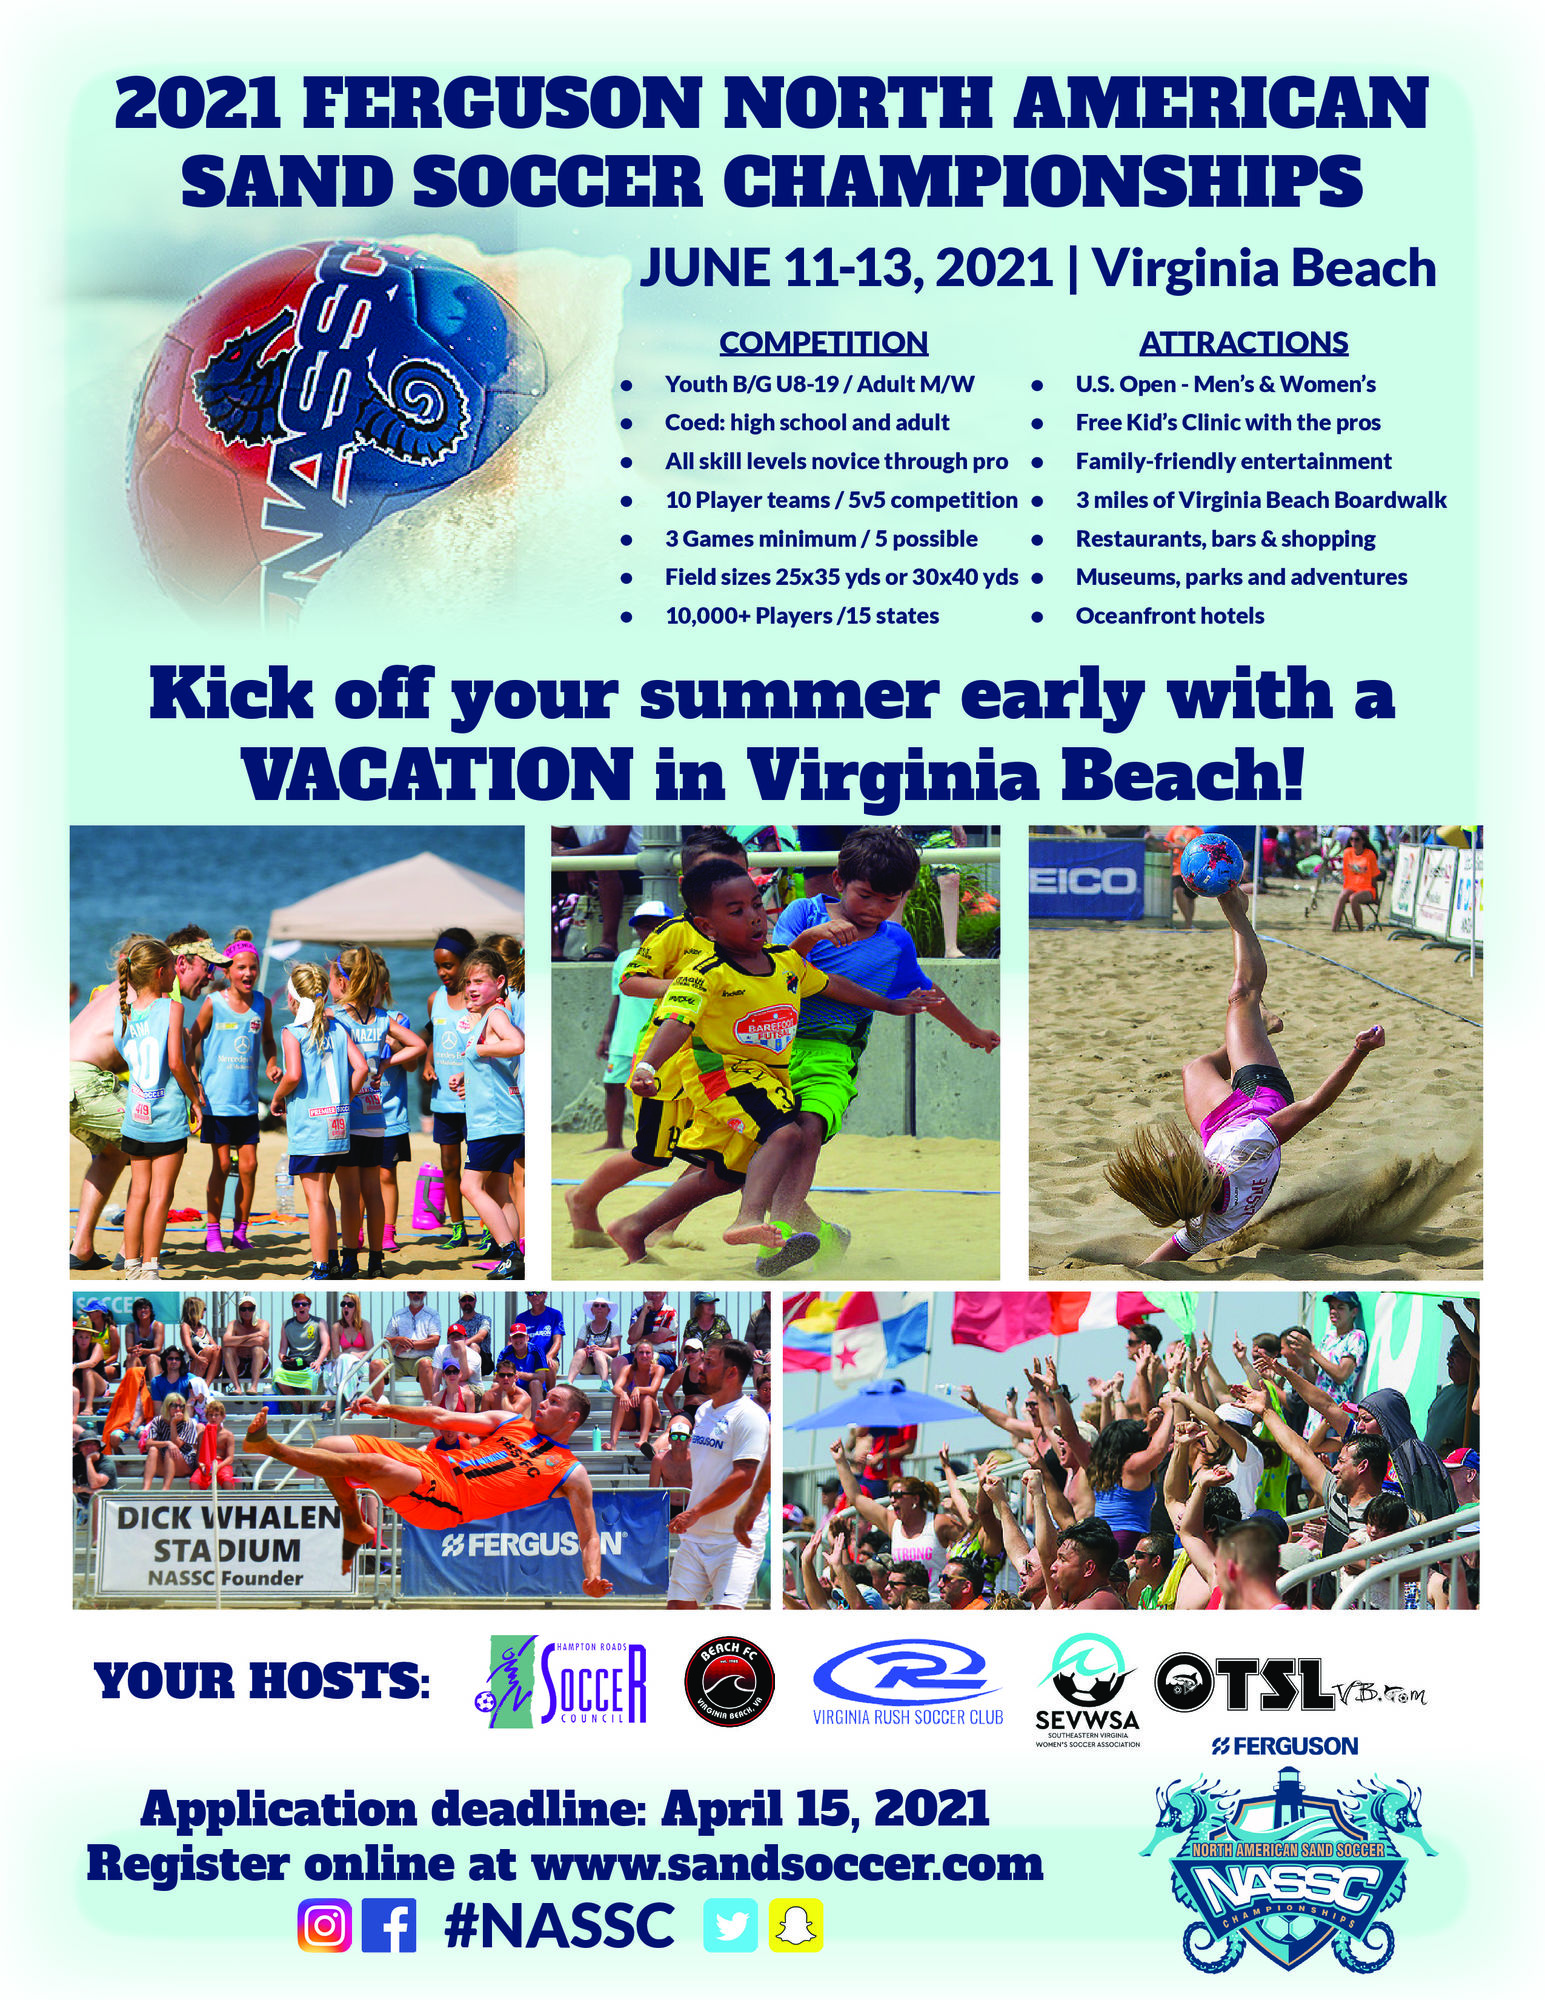 NASSC-North American Sand Soccer Championships Kids Clinic